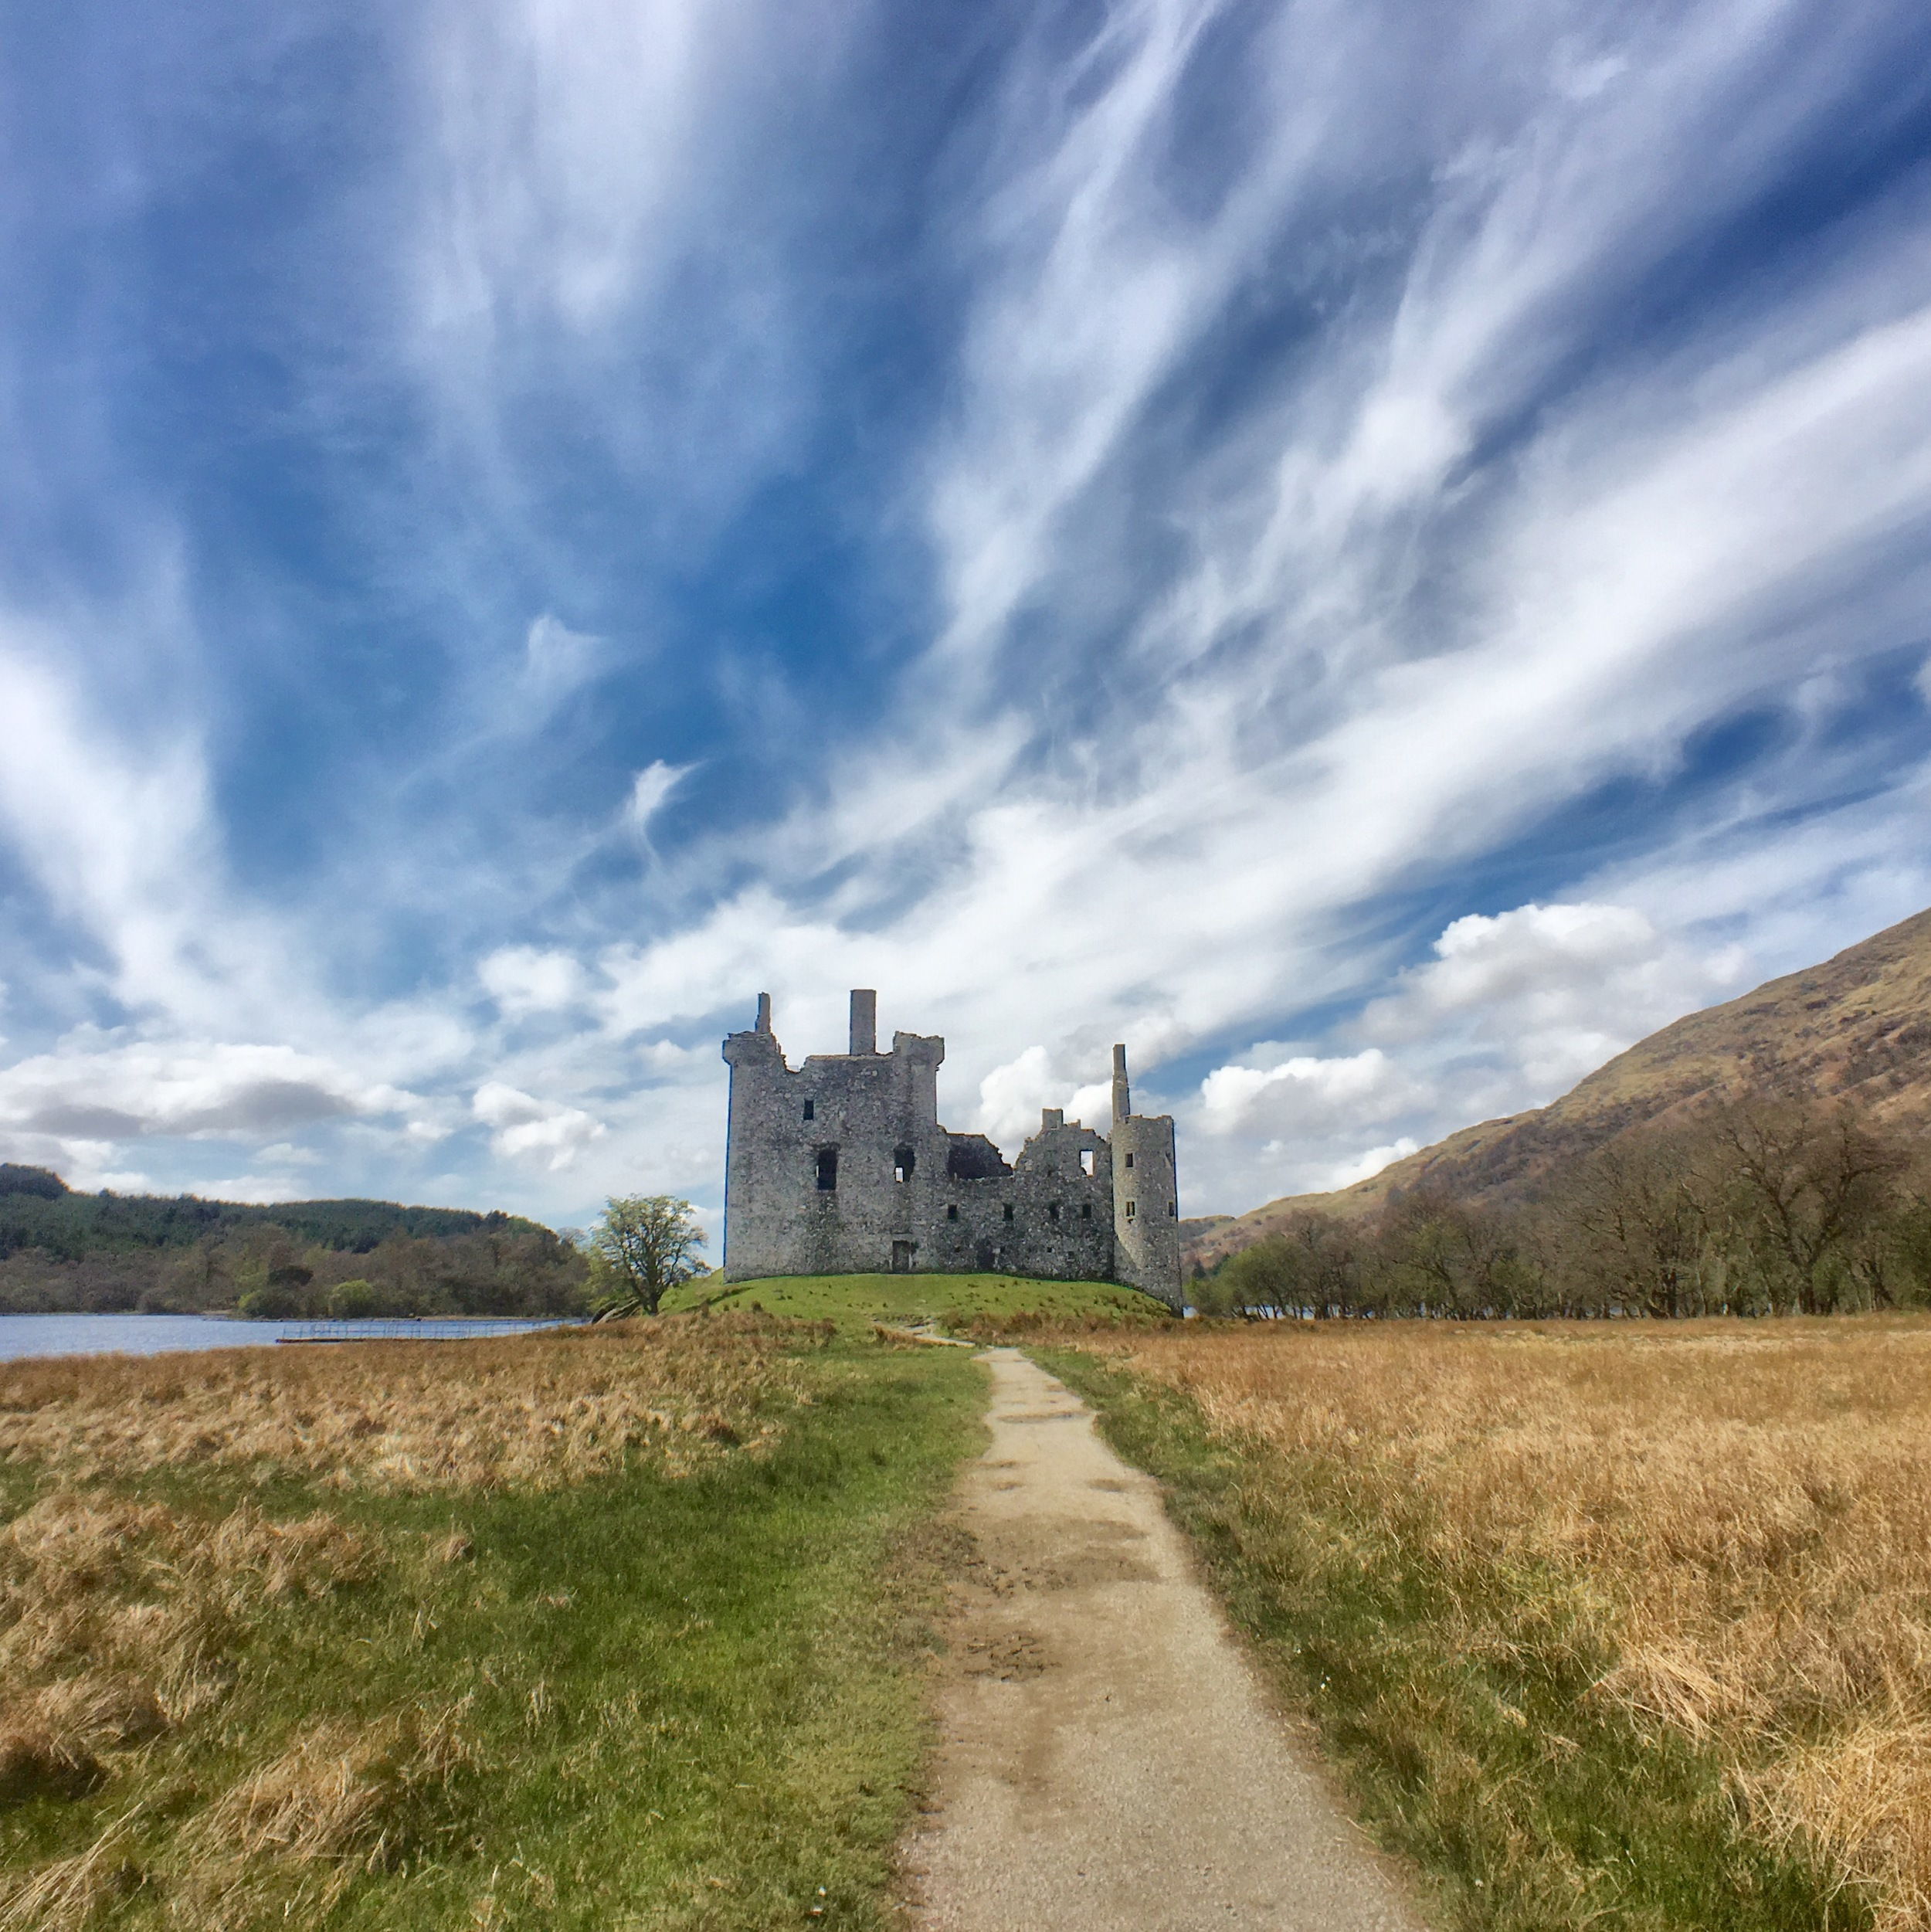 Kilchurn Castle from the distance.